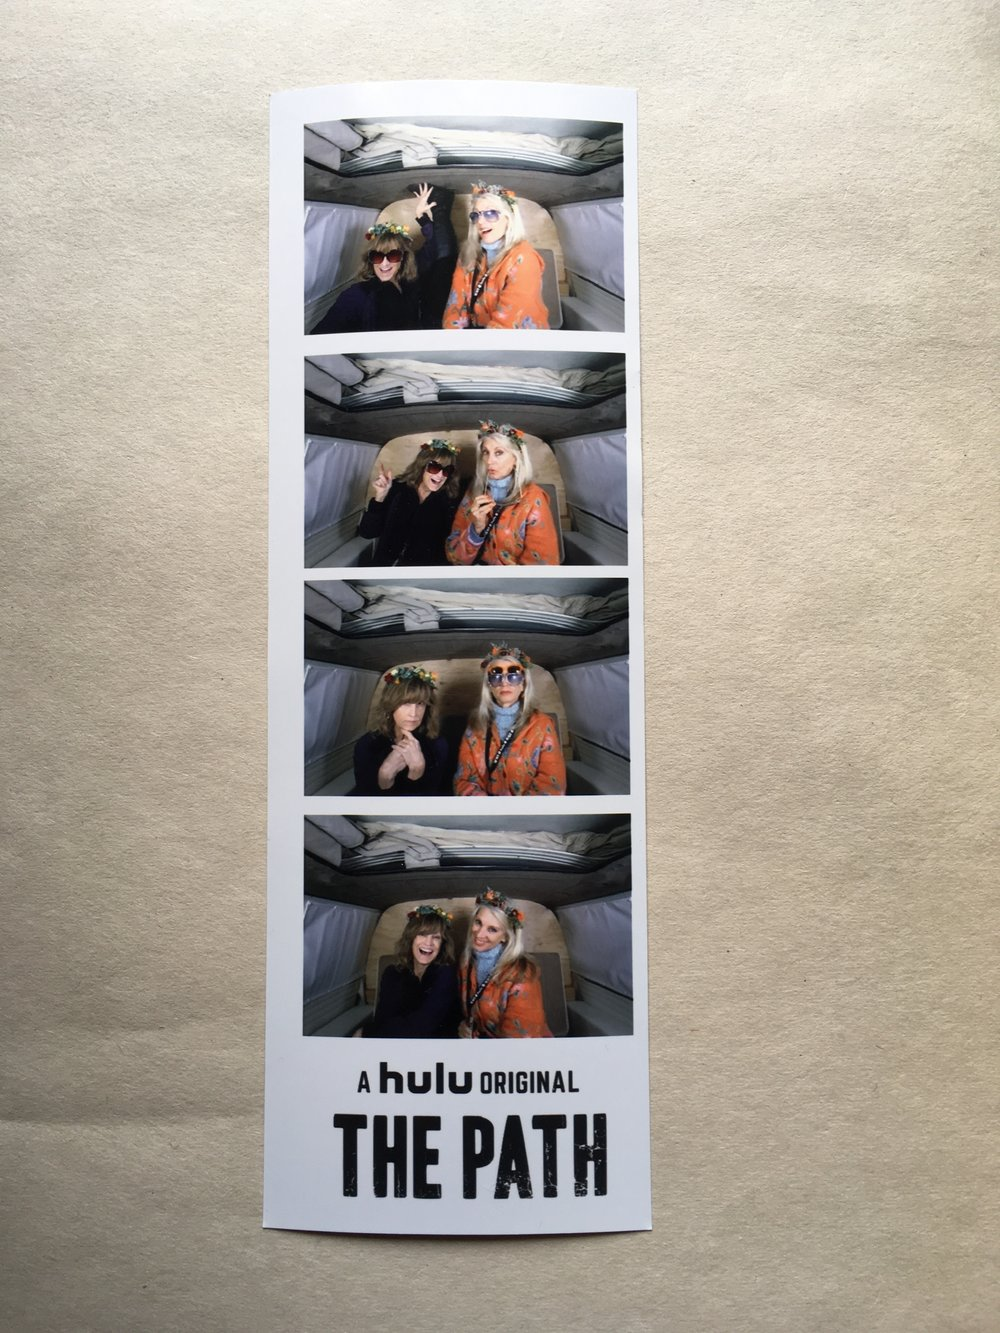 Wacky fun in the VW photo booth with Heather Lea Gerdes and Cheryl Bricker @  The Path's  FYC at Hollywood Forever Cemetery in Los Angeles, CA